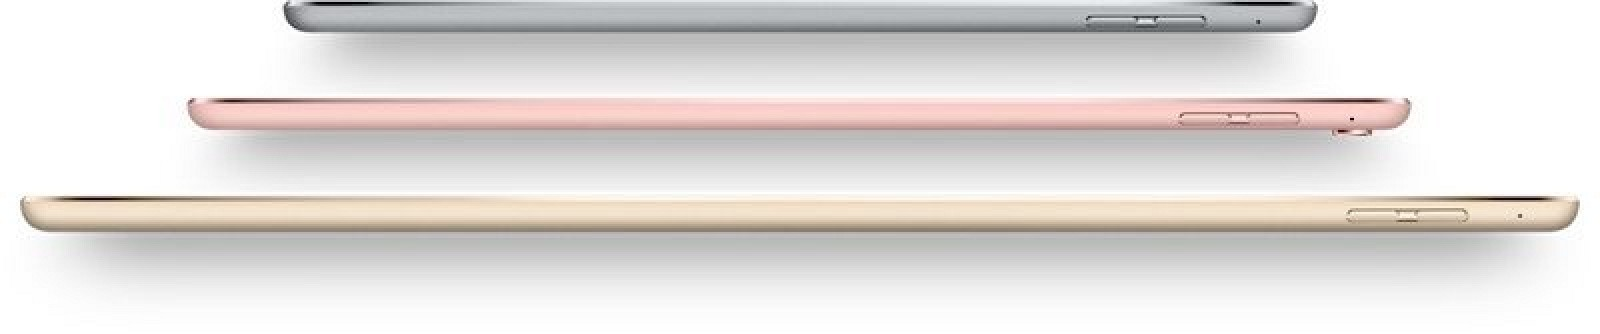 photo image Size of New 'High End' iPad Pro Still Unclear, Said to be Between 10 and 10.5-Inches